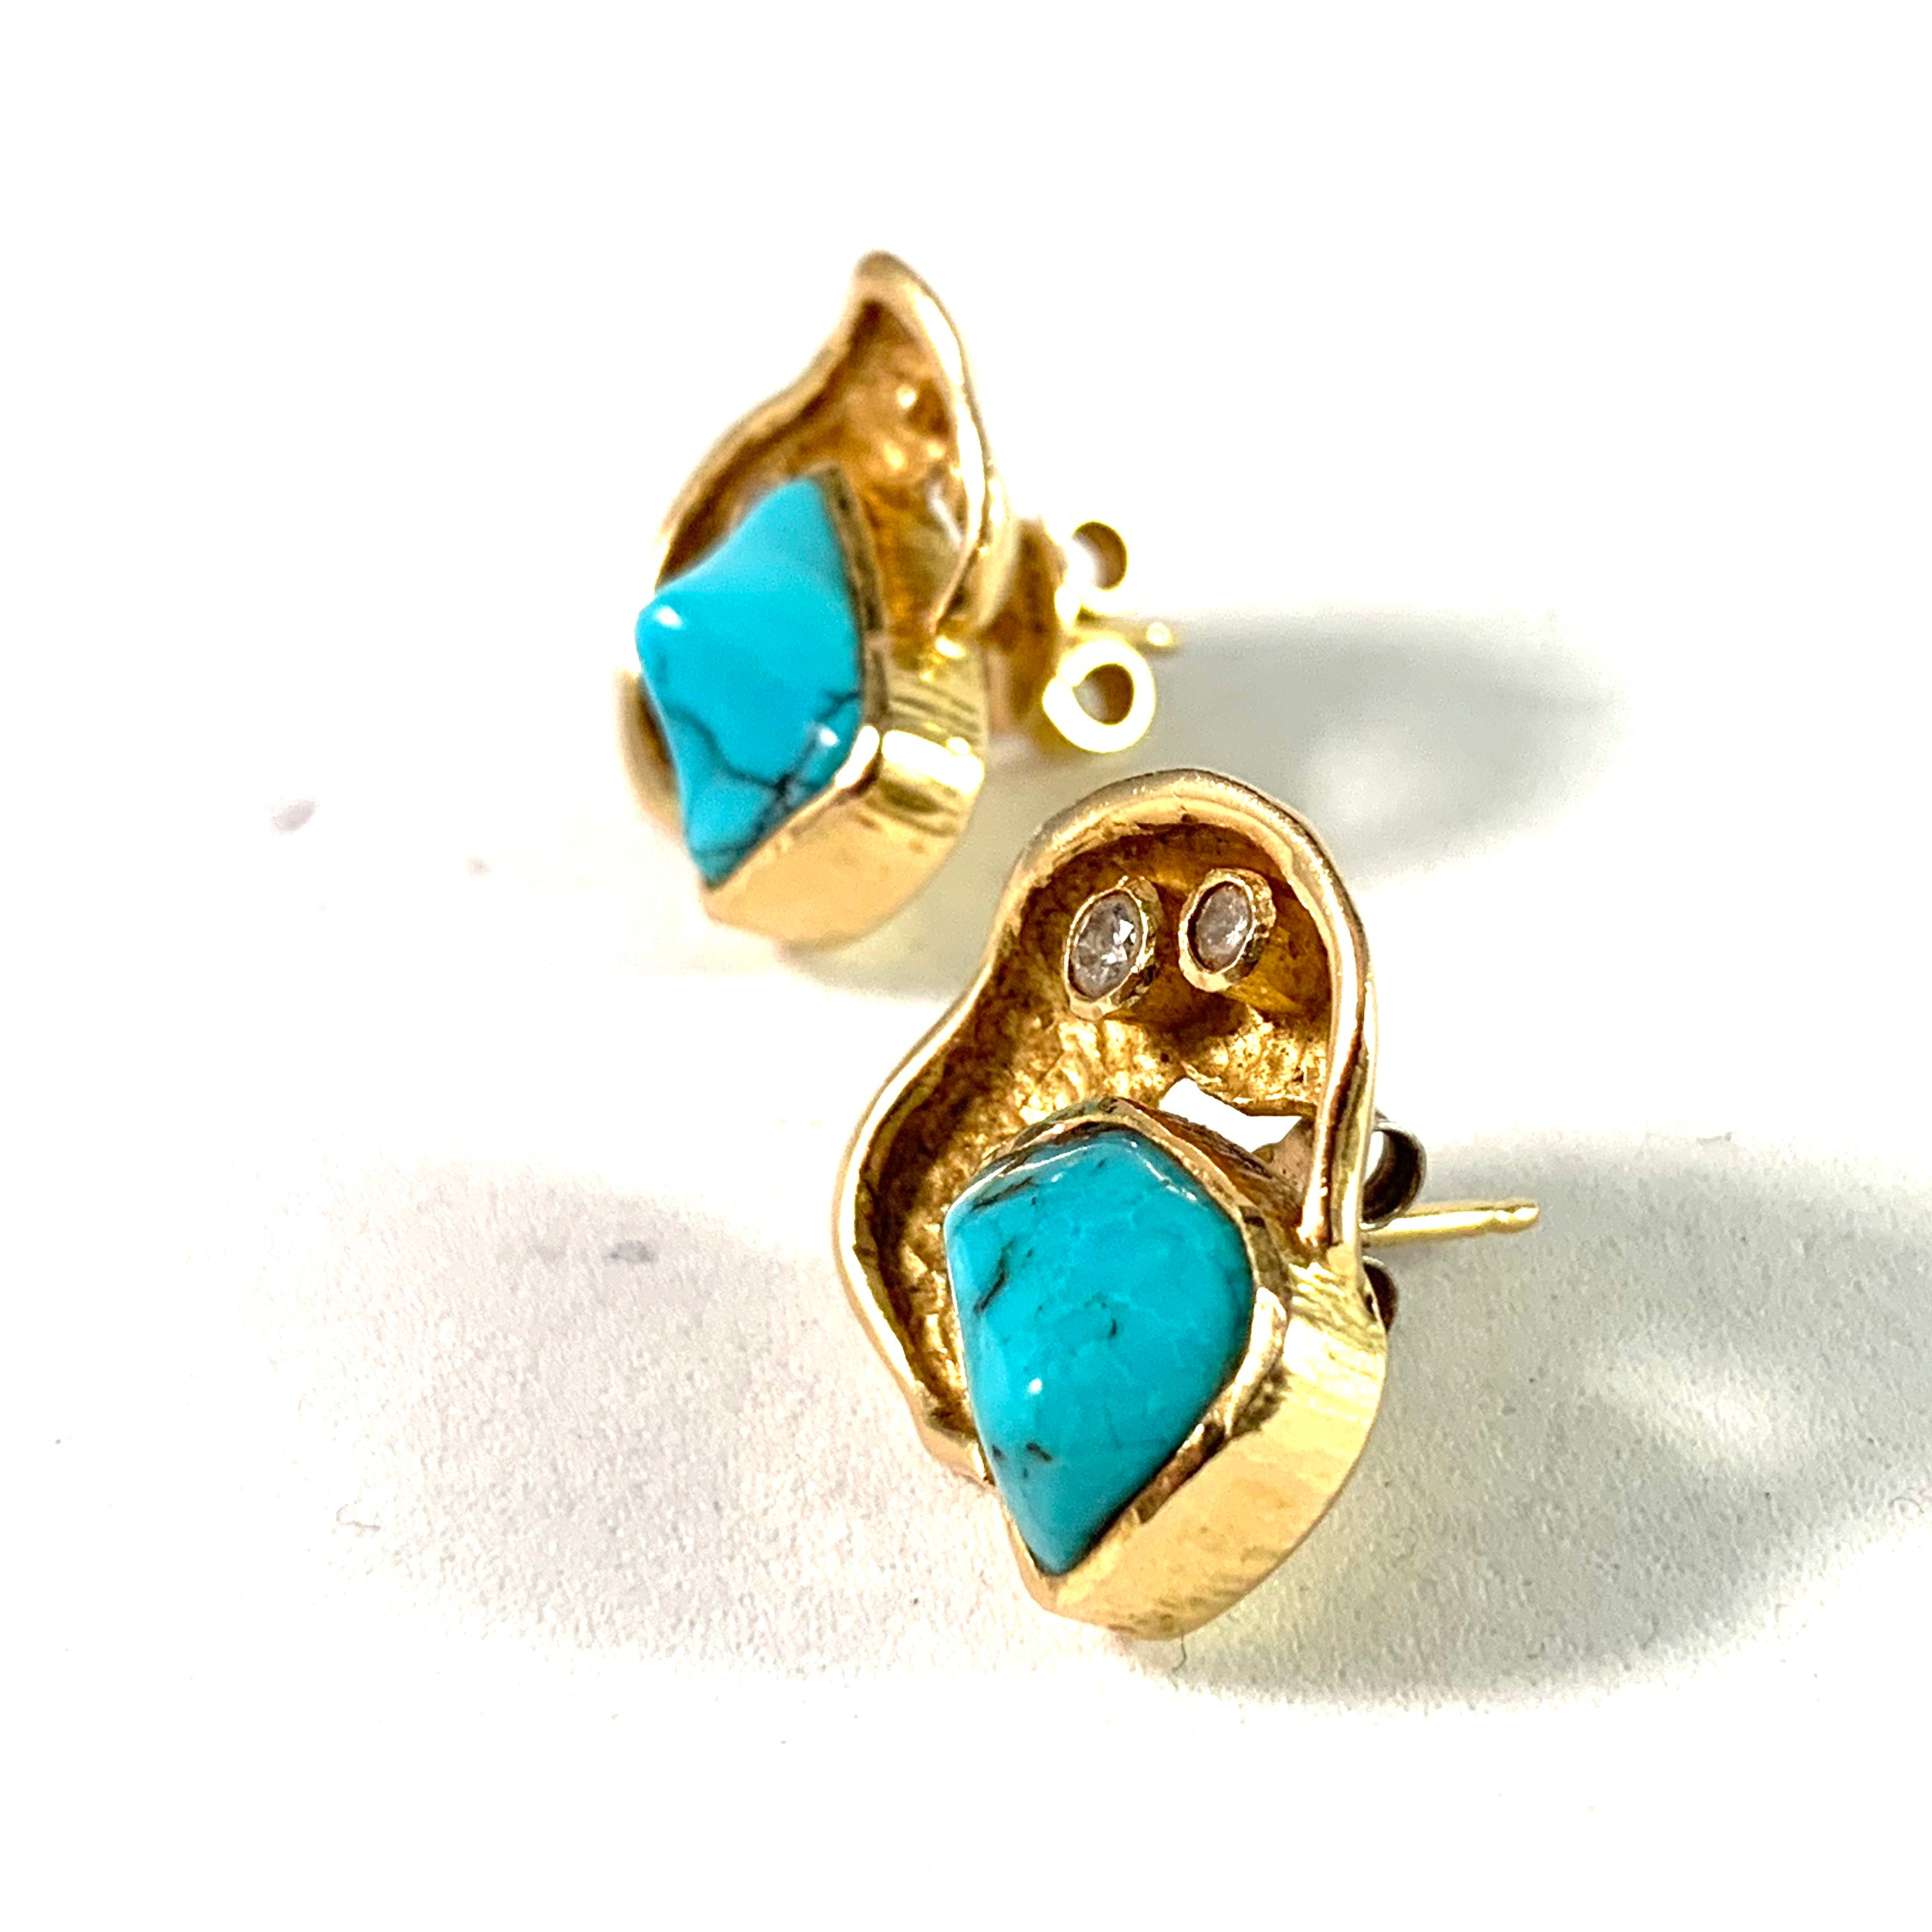 John Victor Rørvig, Denmark Vintage 18k Gold Diamond Turquoise Earrings